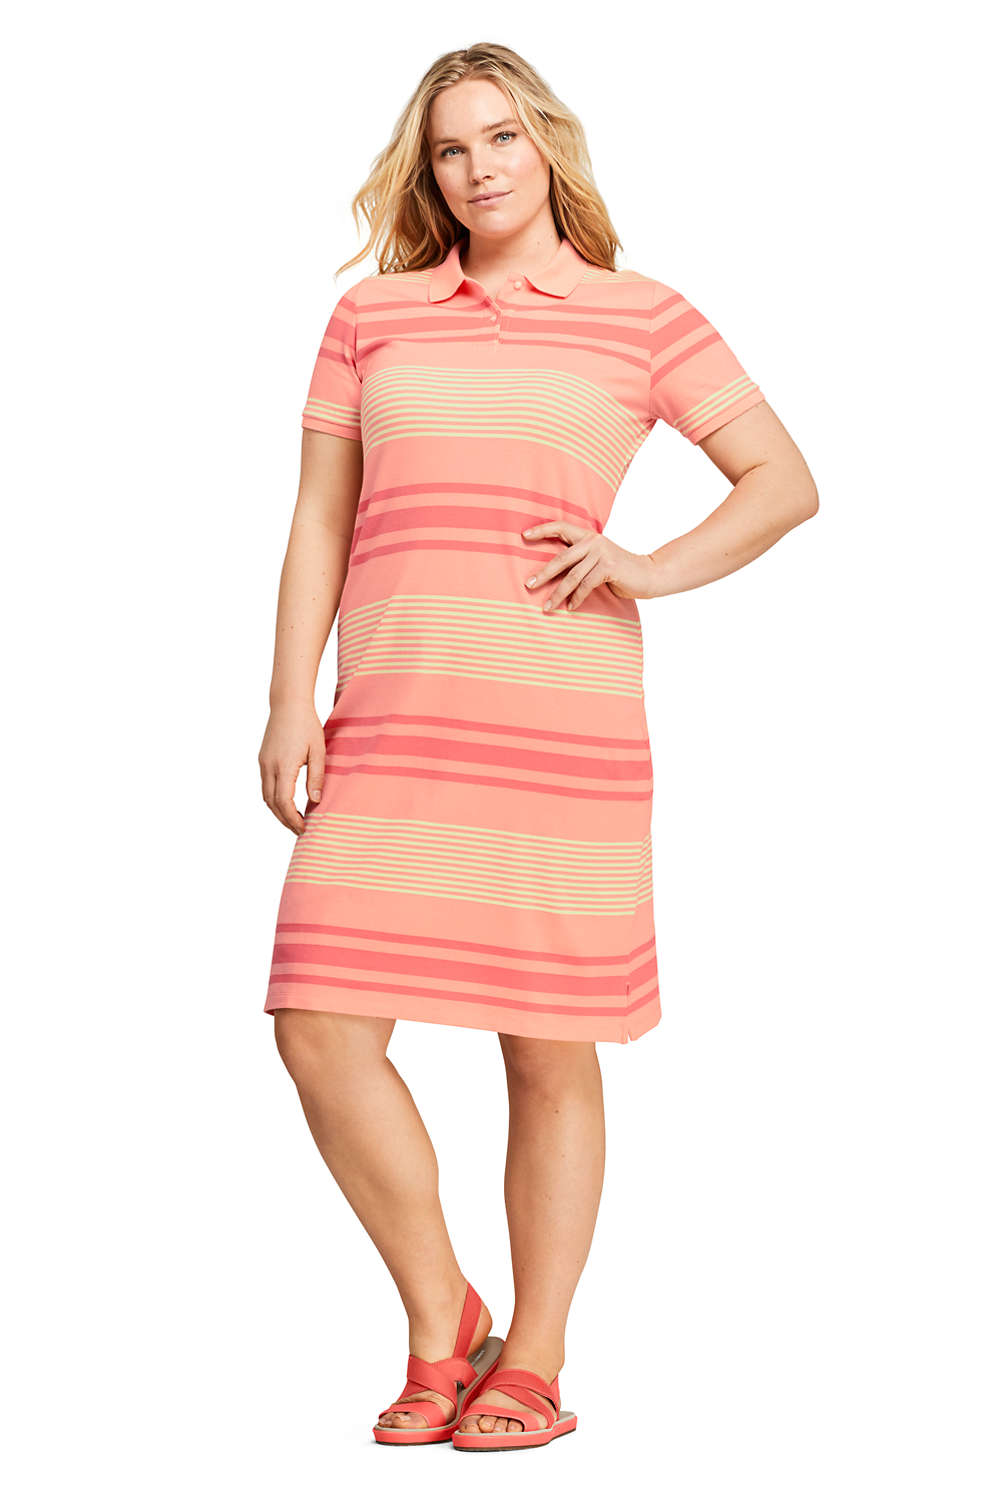 Women\'s Plus Size Short Sleeve Print Mesh Polo Dress from Lands\' End